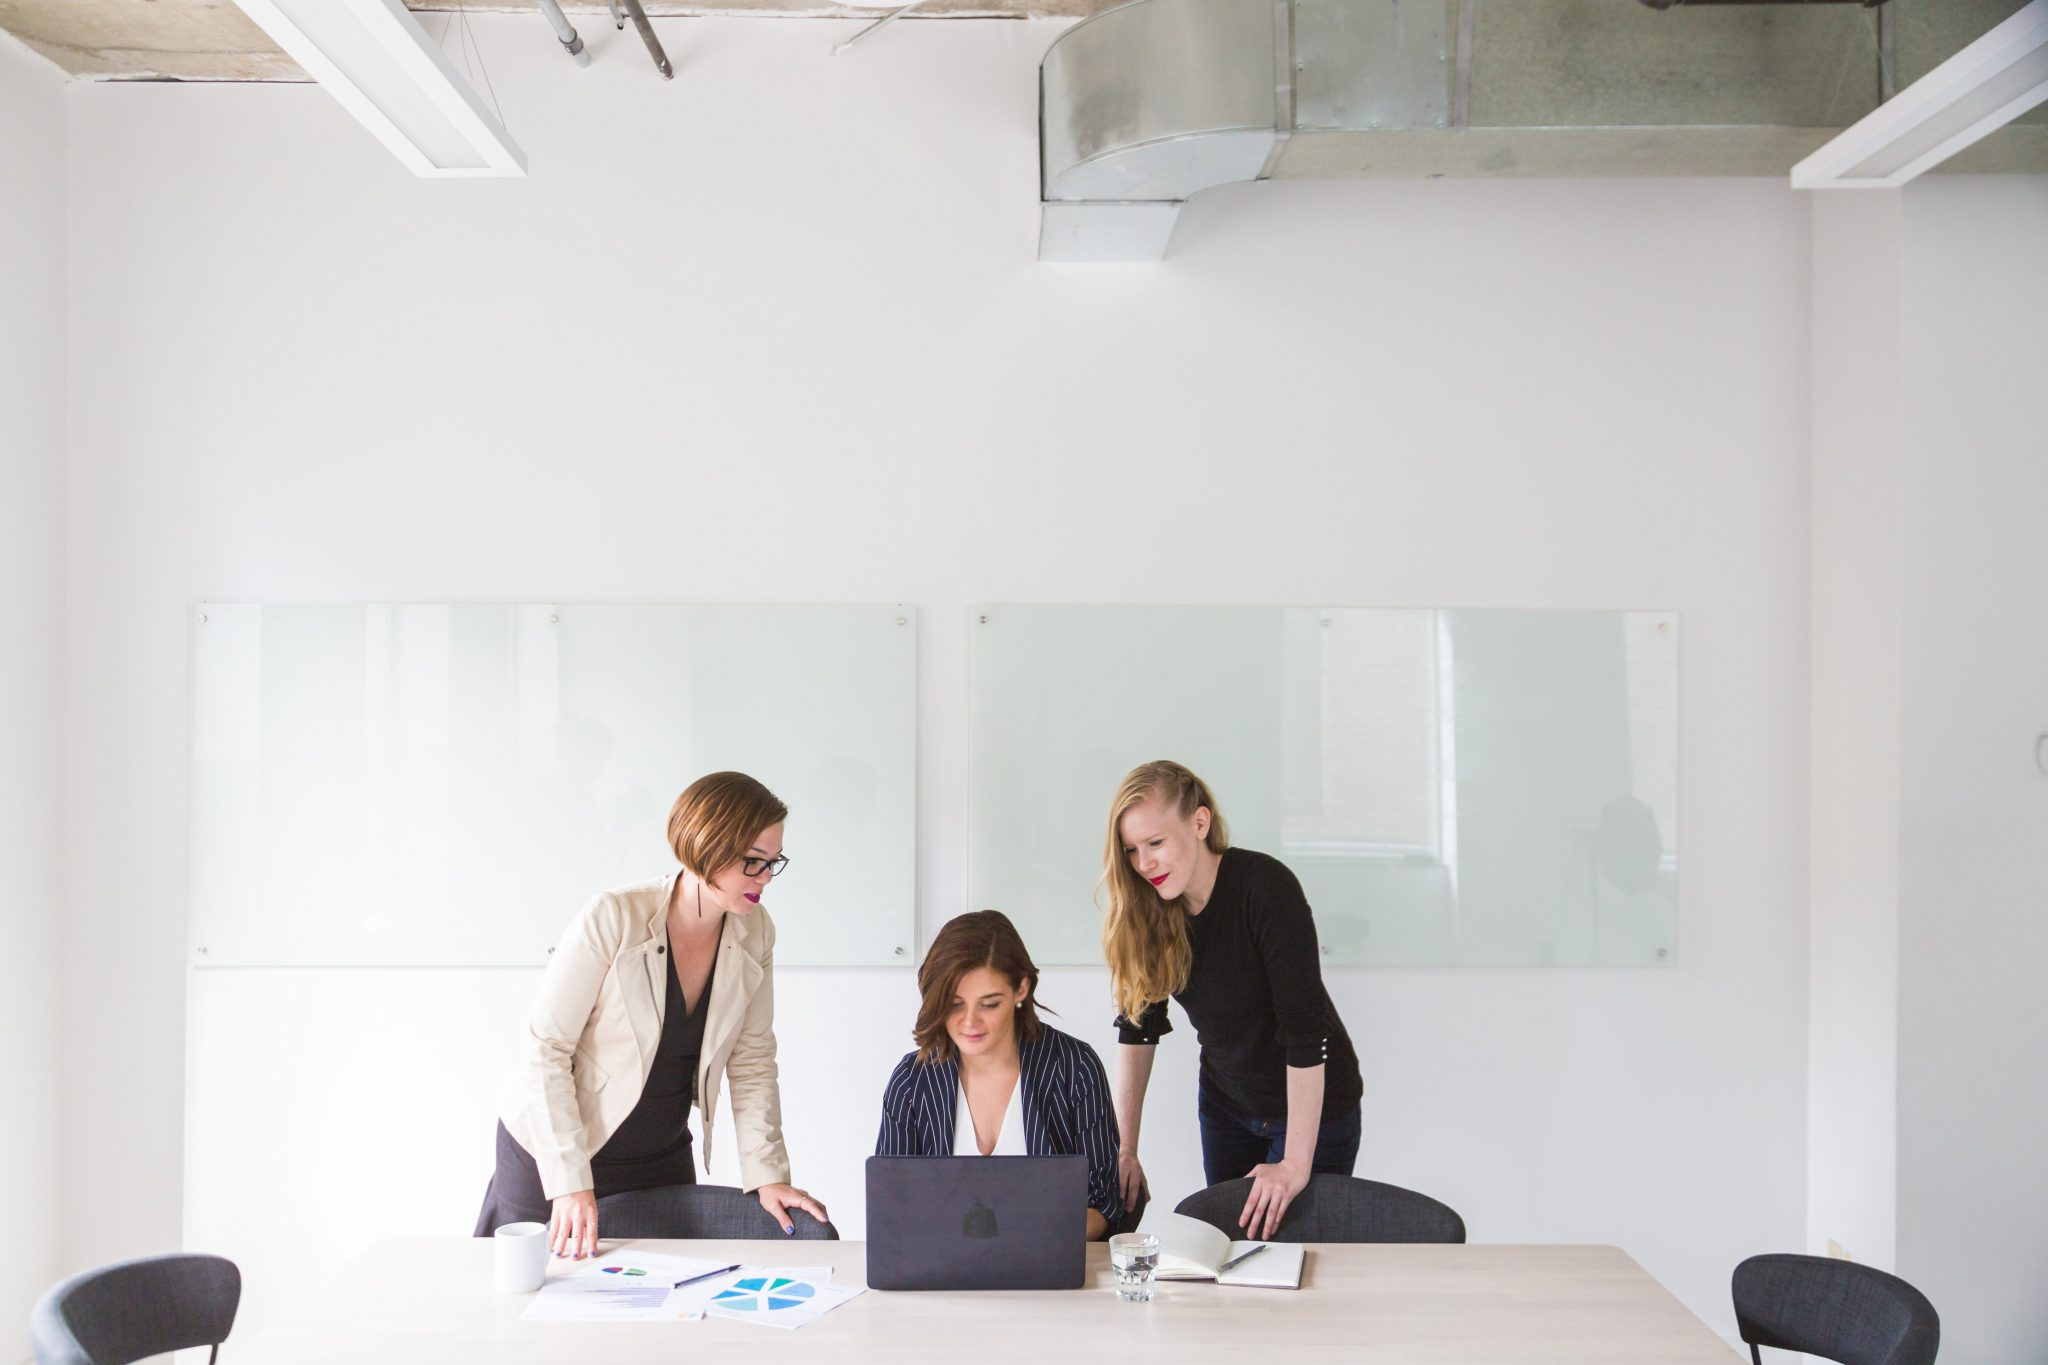 Three women in office looking at computer